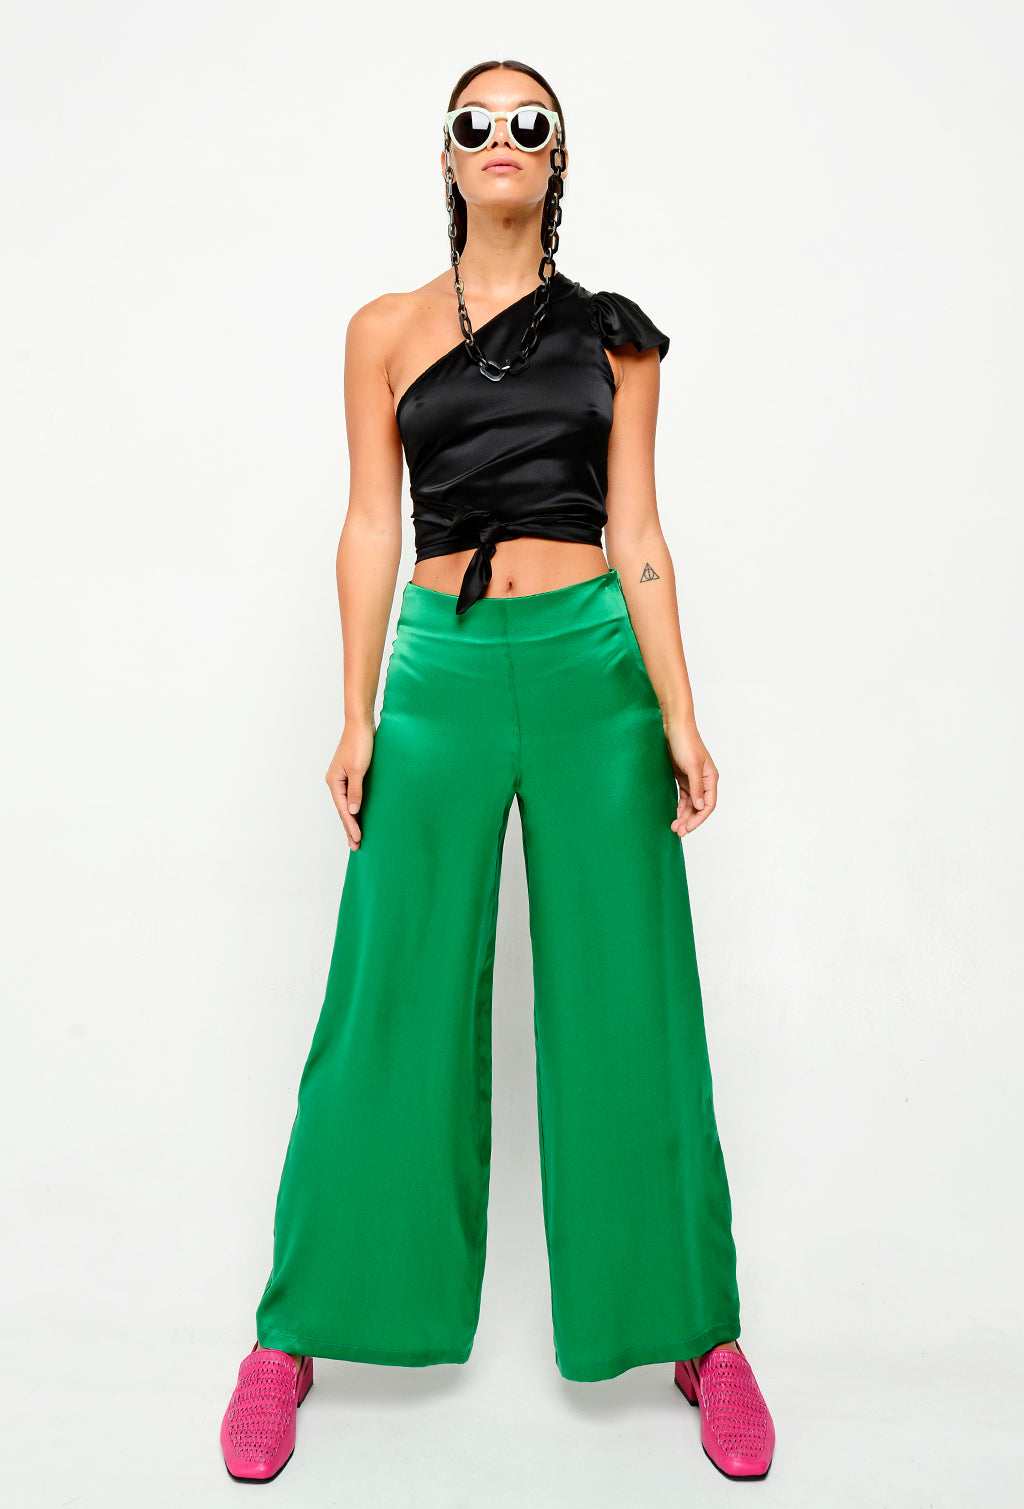 SILK PANTS - GREEN